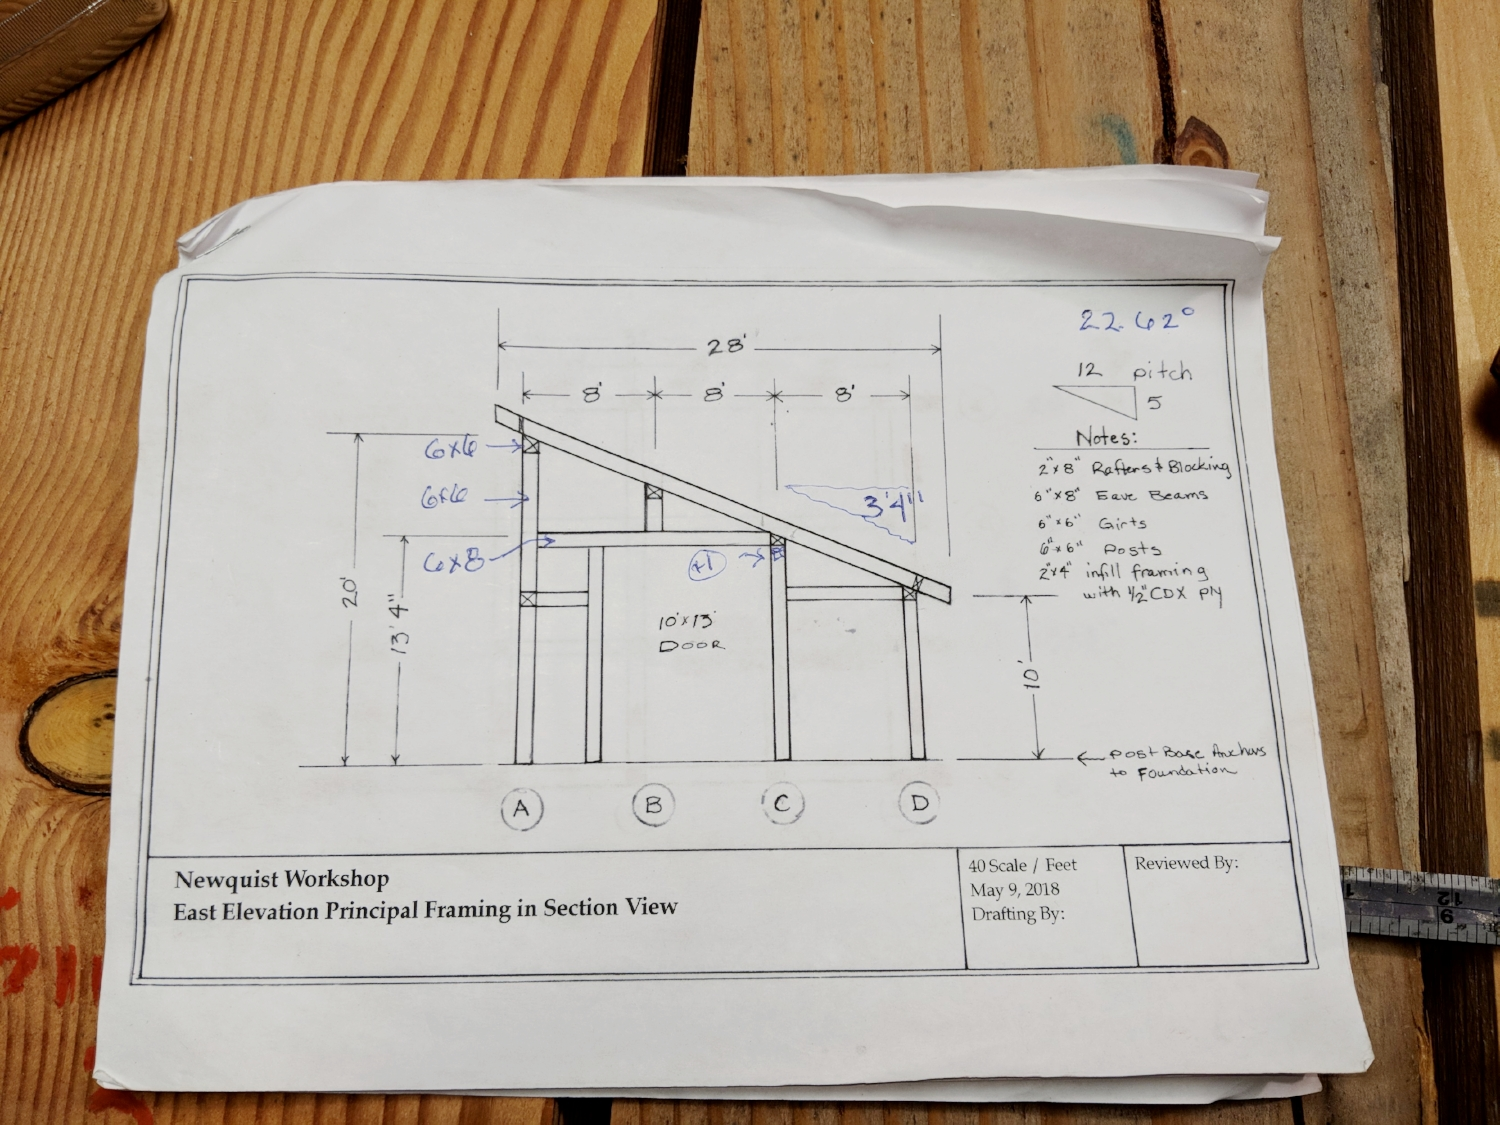 The plans for the workshop, Newquist Forge